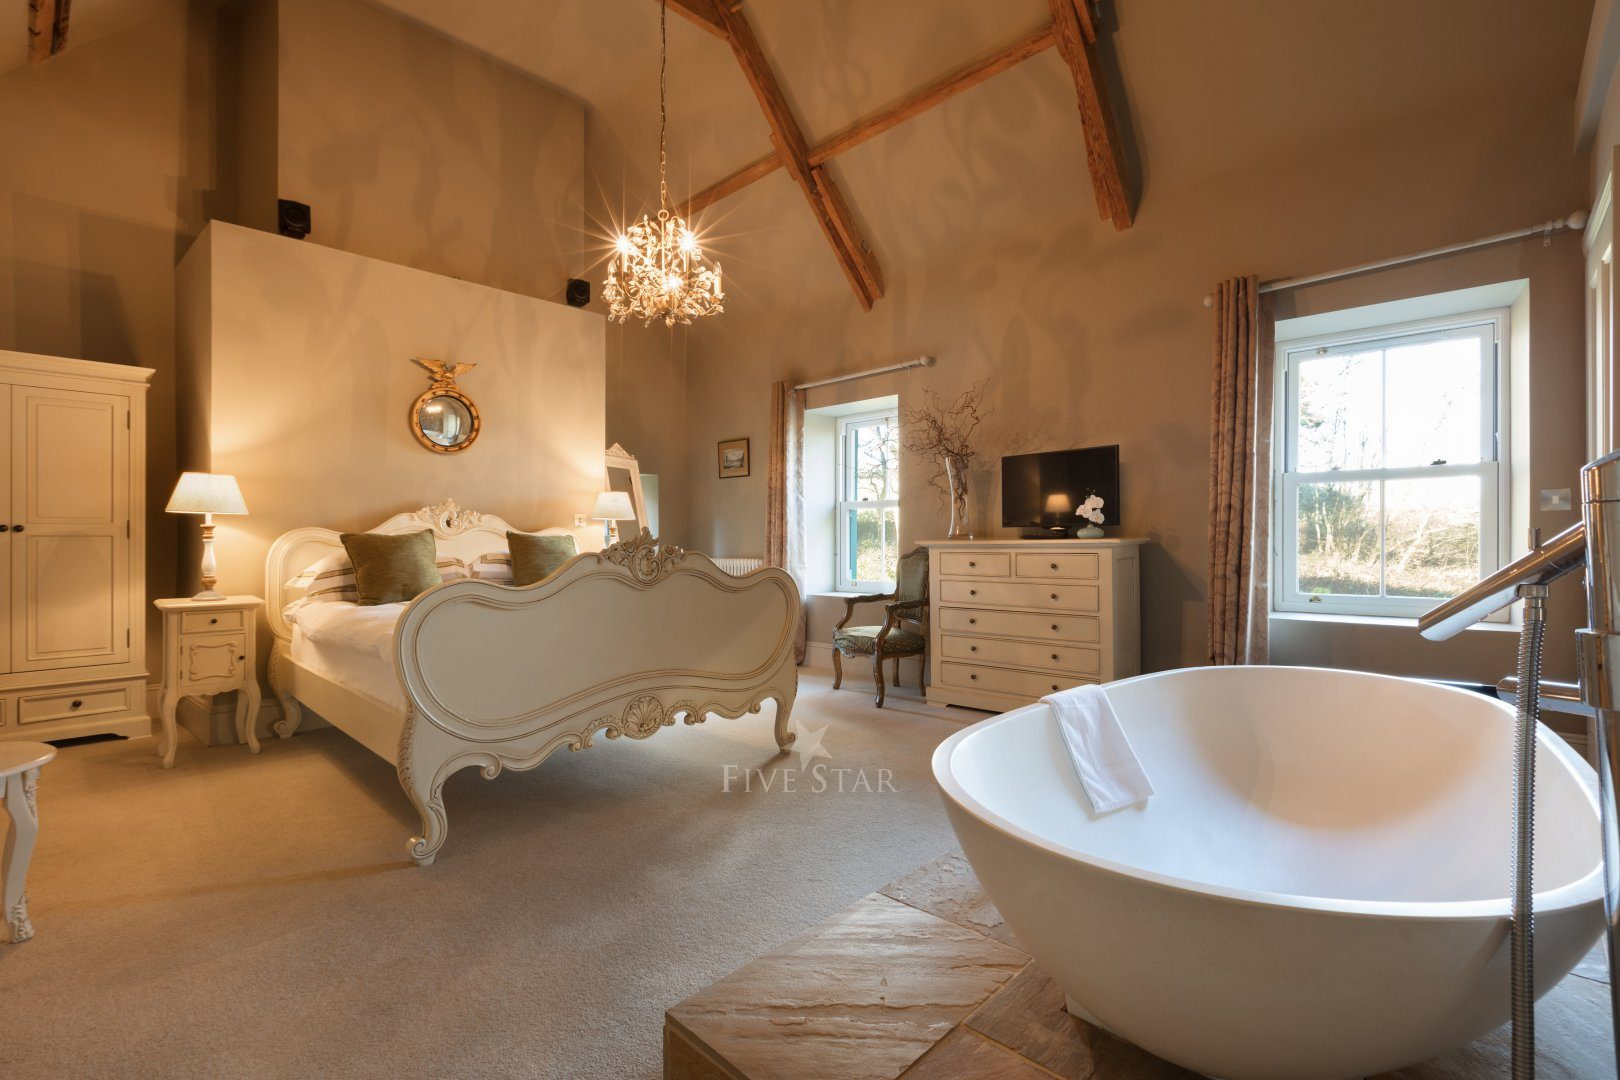 Cathedral Suite with 1700s beams & feature bathtub